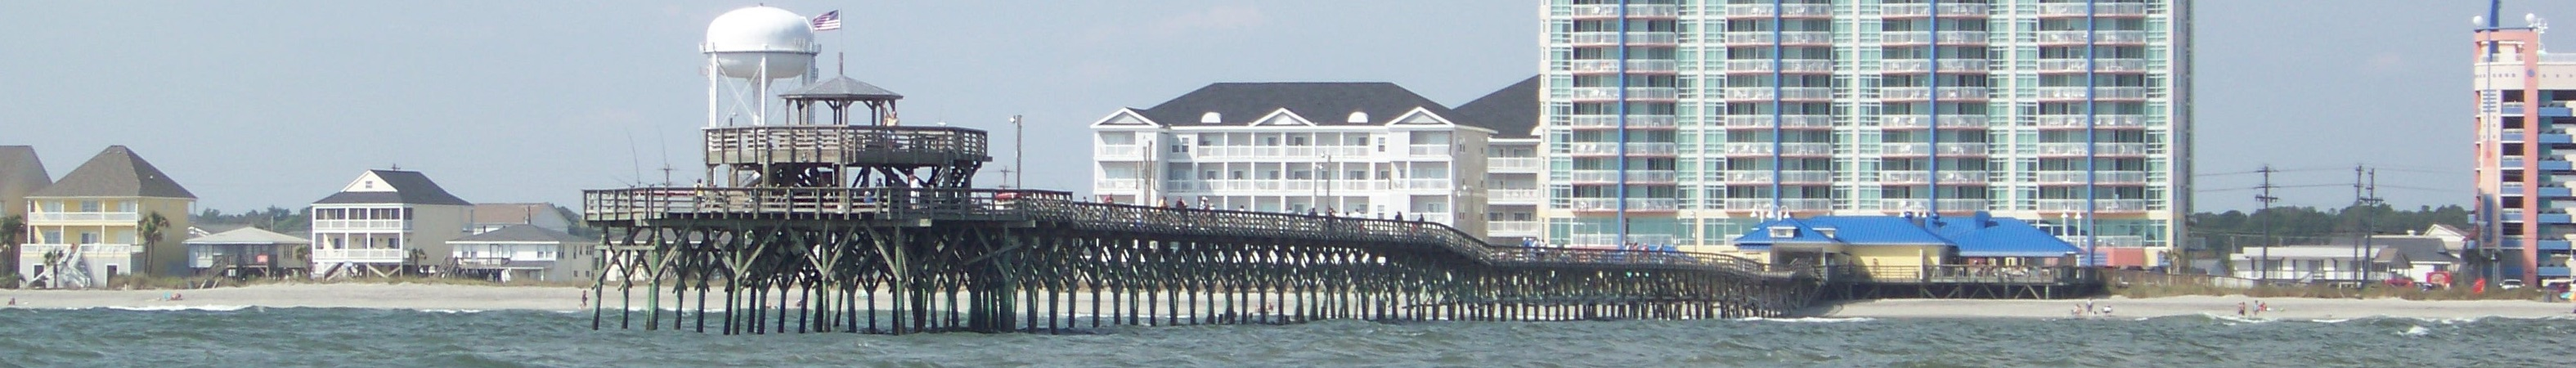 Wv banner grand strand cherry grove pier